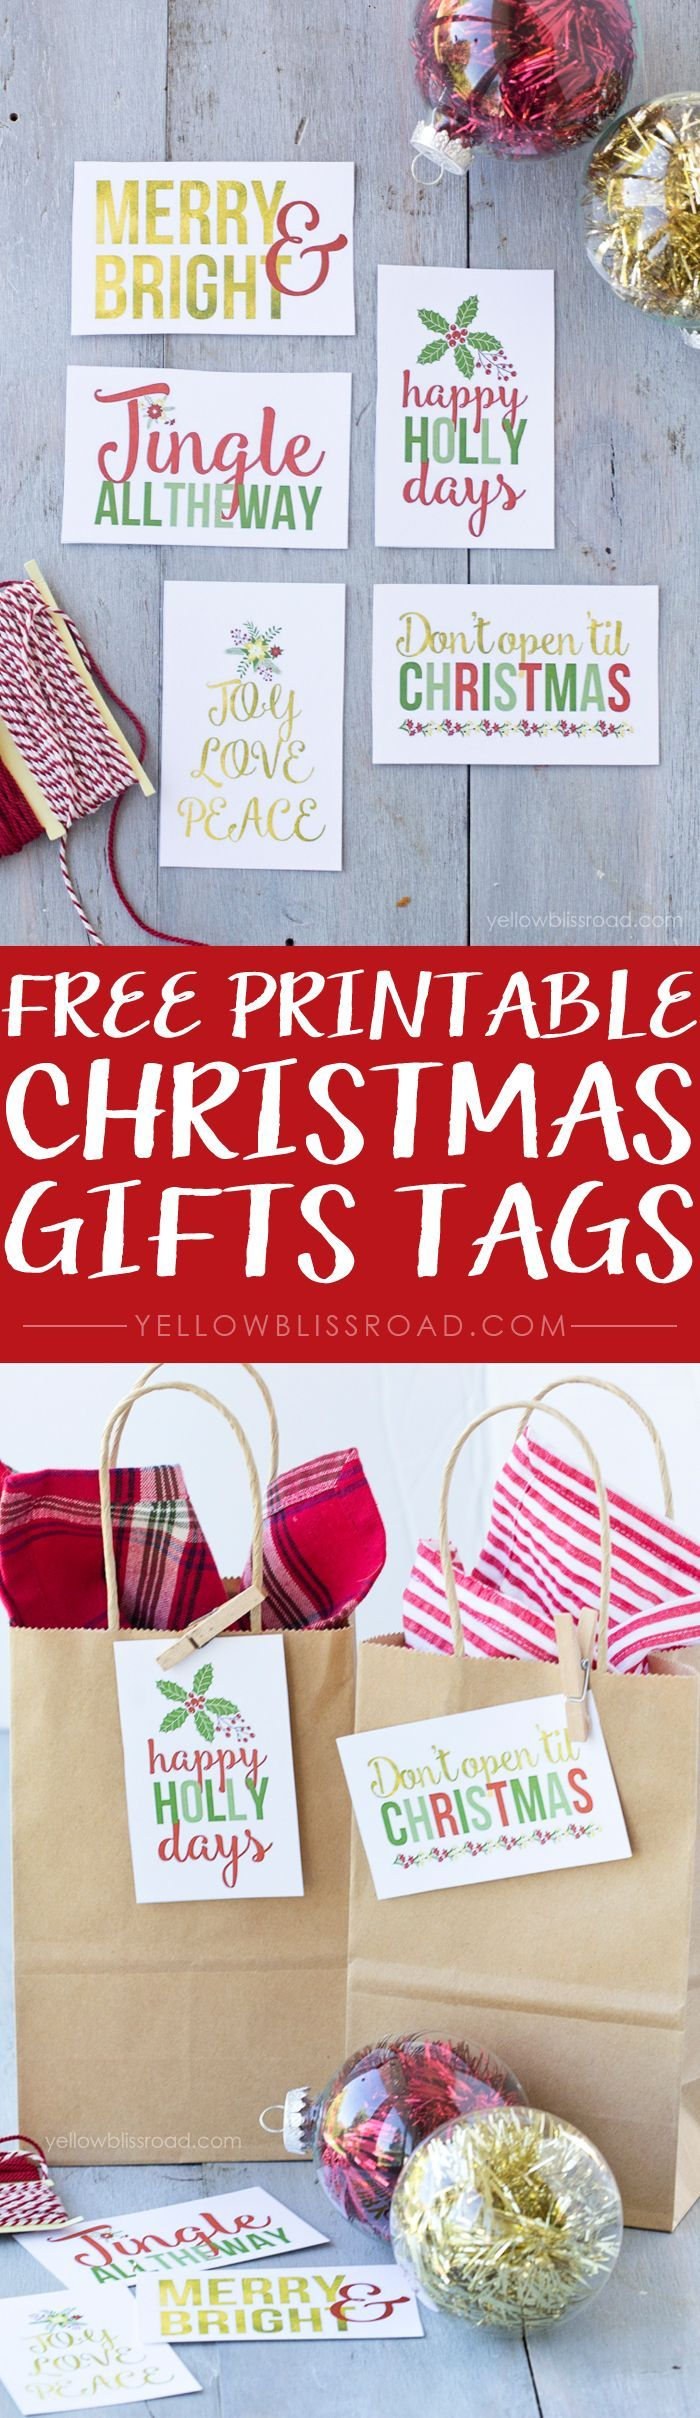 1670 best free gift tags images on pinterest free printables free printable christmas gift tags negle Image collections